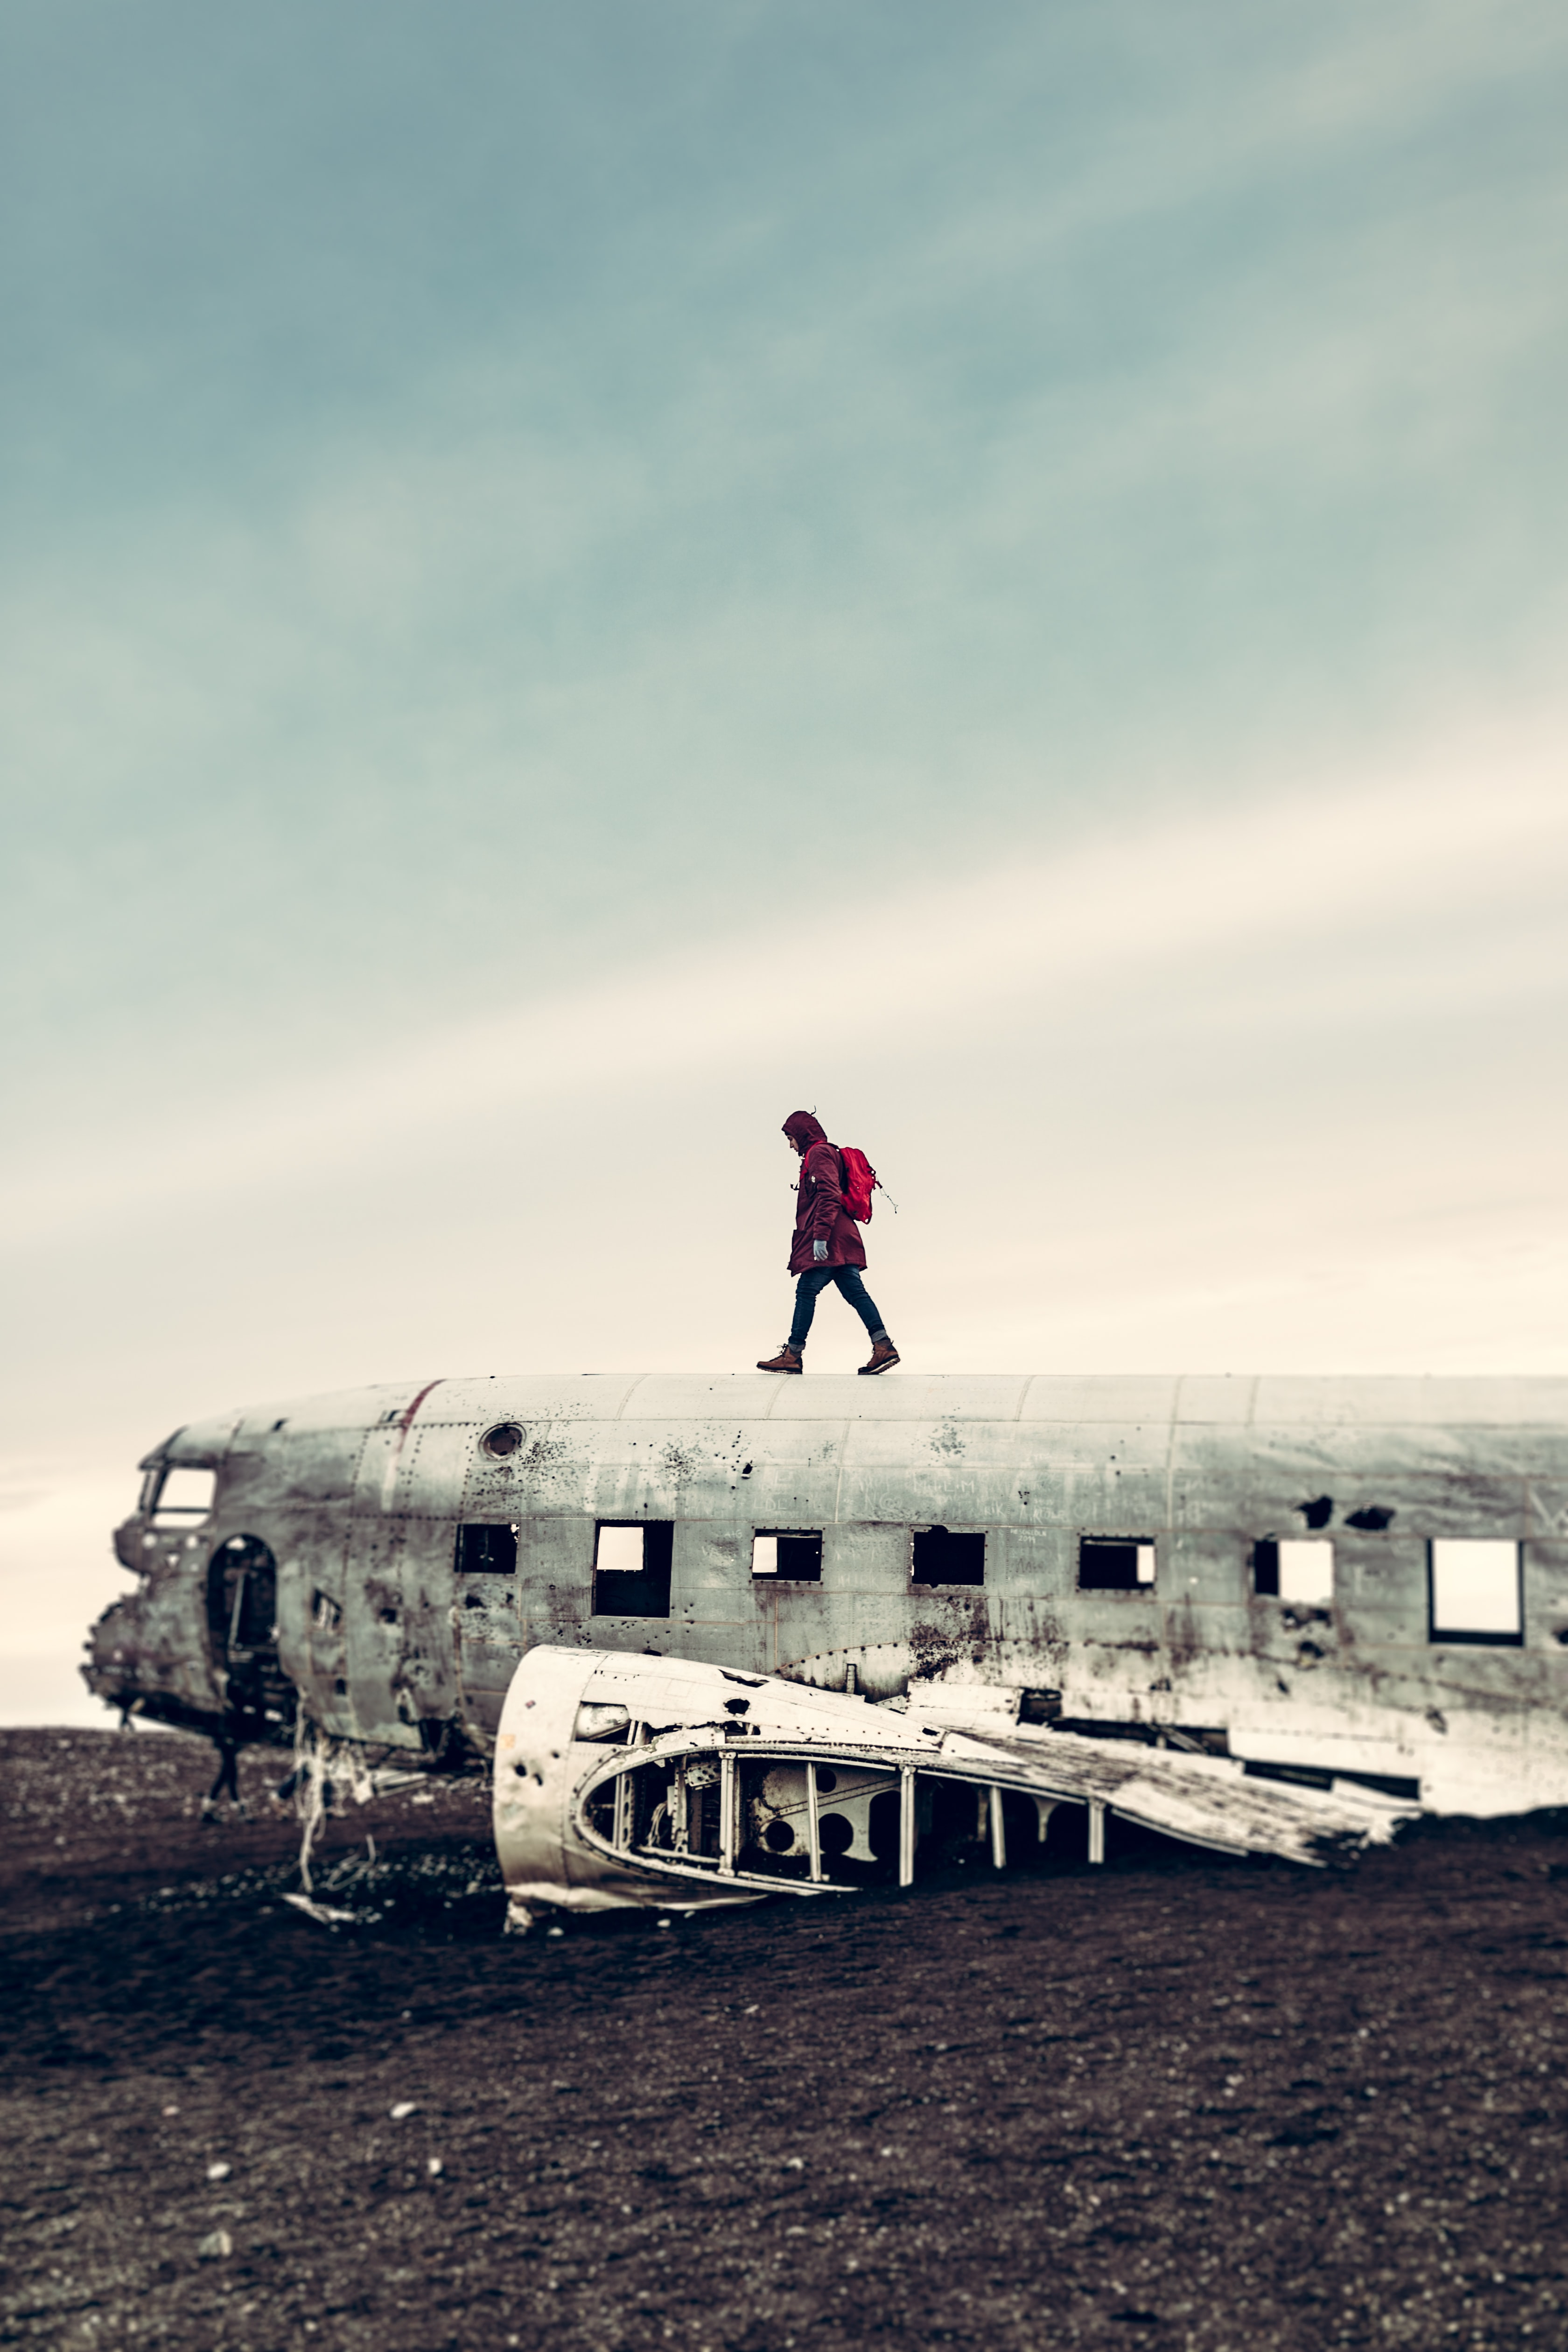 photo of person walking above wrecked plane